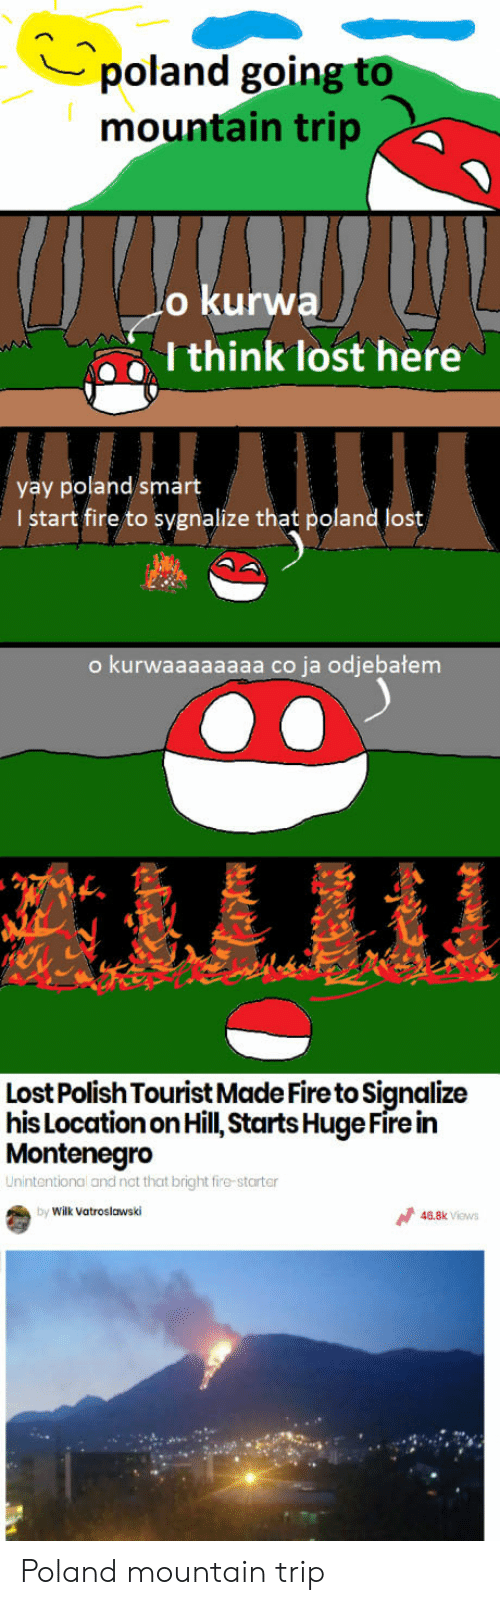 Polishable: poland going to  mountain trip  o kurwa  I think lost here  yay poland smart  I start fire to sygnalize that poland lost  o kurwaaaaaaaa co ja odjebatem  Lost Polish Tourist Made Fire to Signalize  hisLocationon Hill, Starts Huge Fire in  Montenegro  Unintentional and not that bright fire-starter  by Wilk Vatroslawski  46.8k ViewS Poland mountain trip